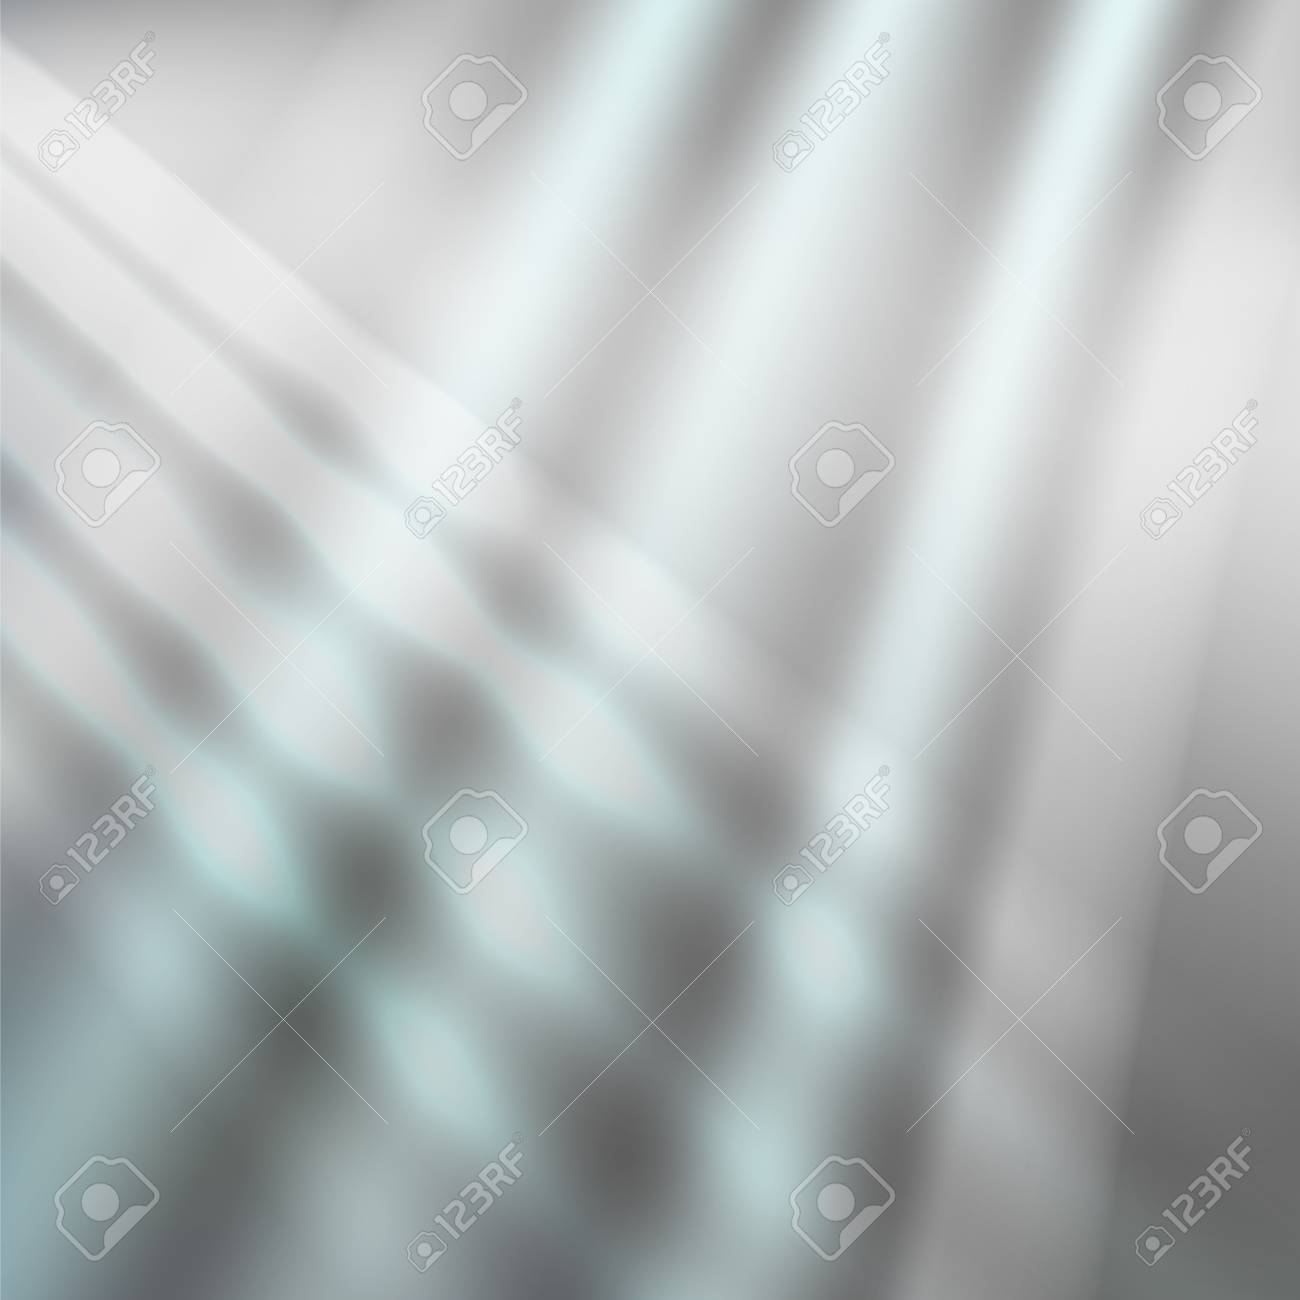 Modern metalic grey background of bright glowing perspective. Gorgeous graphic image template. Abstract vector Illustration for your business brochure colors silver, steel - 89829777